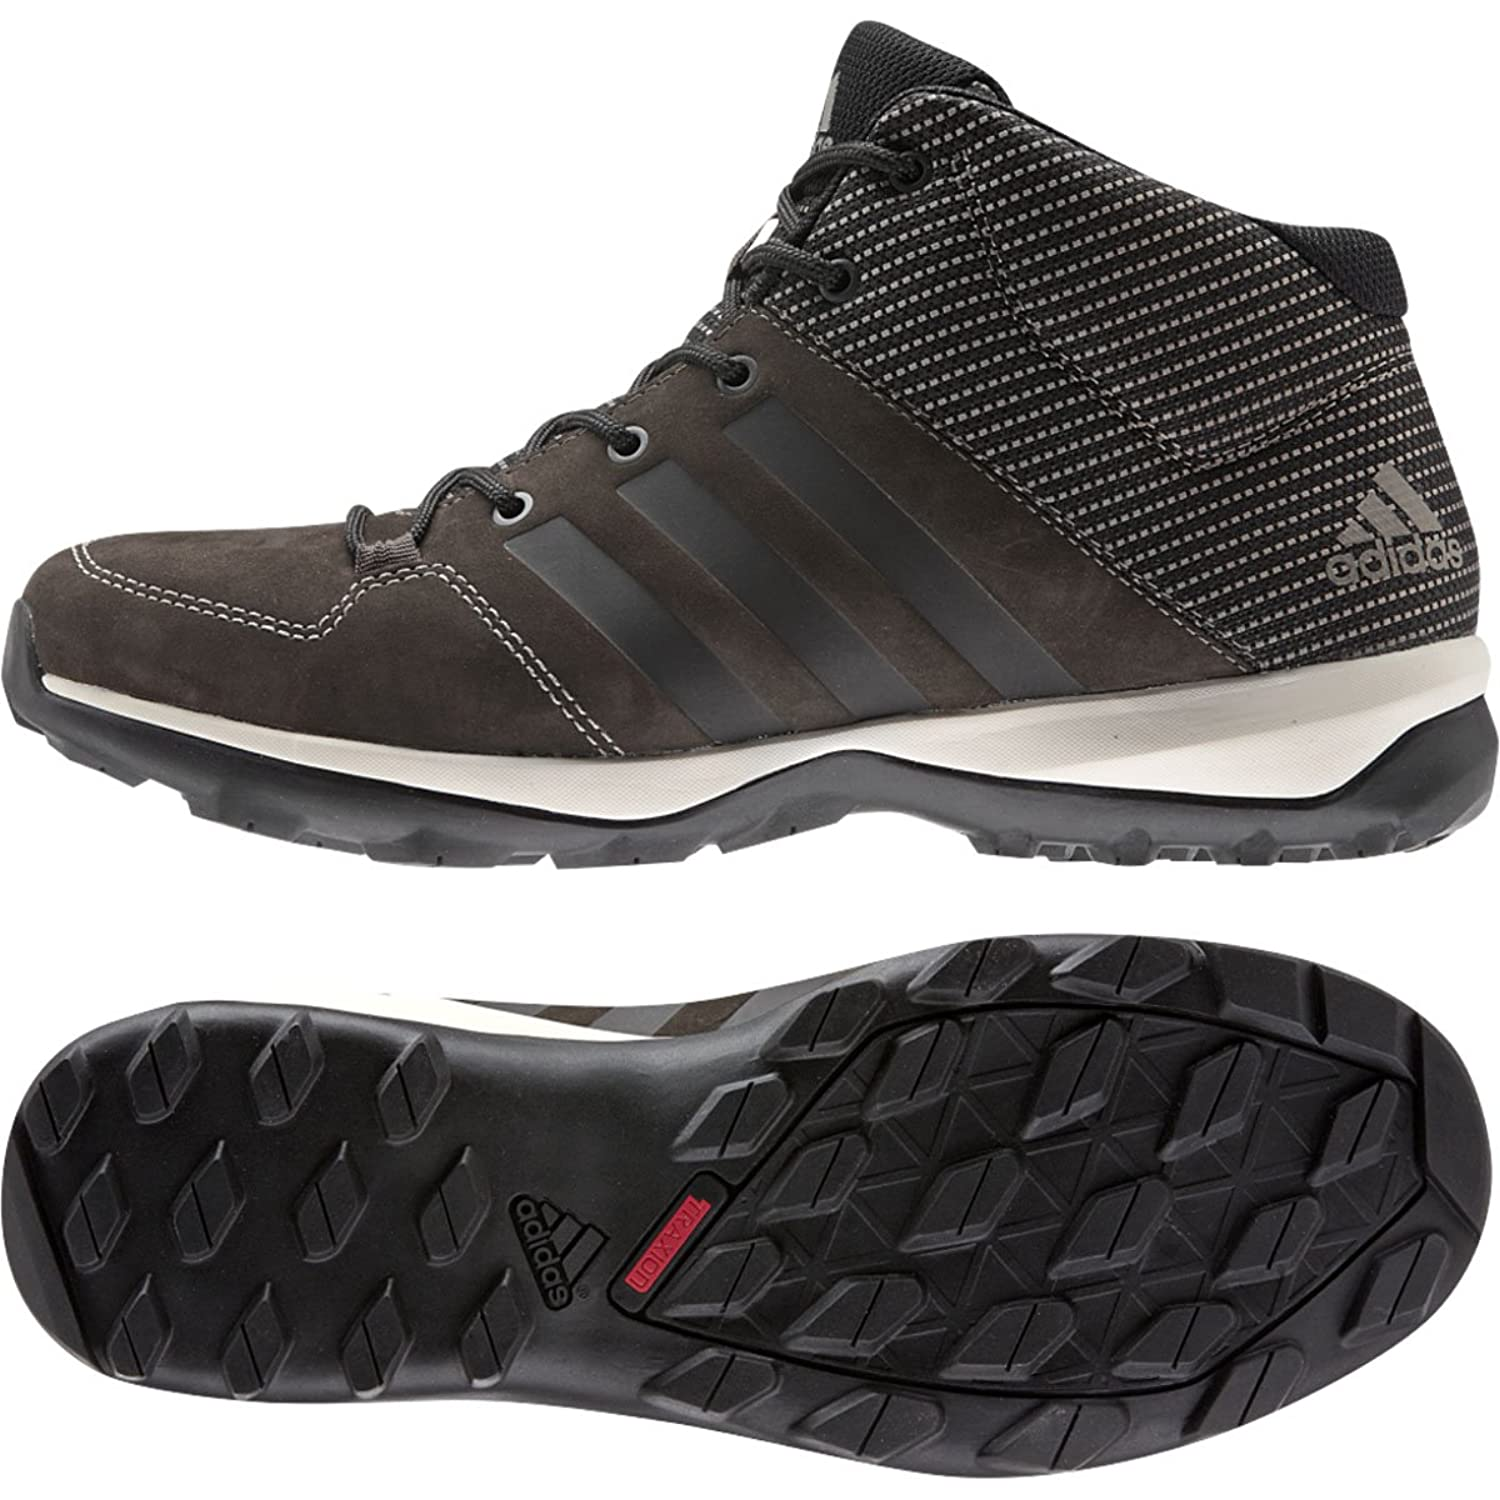 Adidas Outdoor 2015 Men's Daroga Plus Mid Leather Hiking Shoes - B27275 original new arrival 2017 adidas oracle vi mid men s tennis shoes sneakers